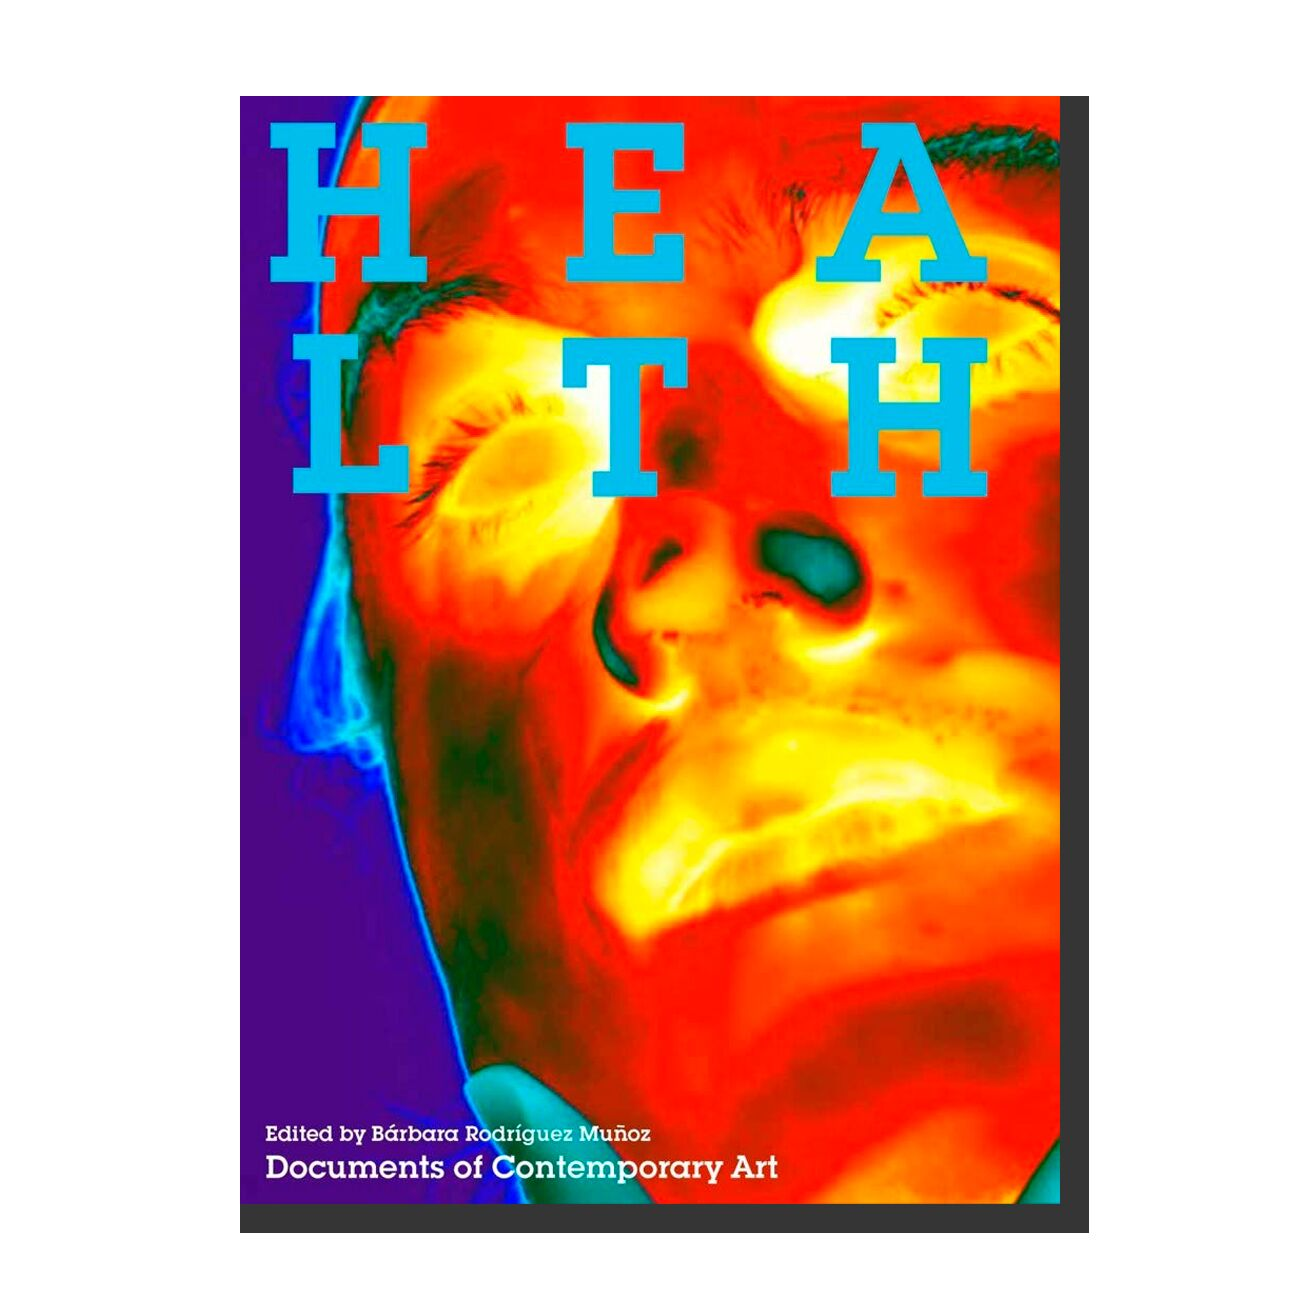 Health (Documents of Contemporary Art)